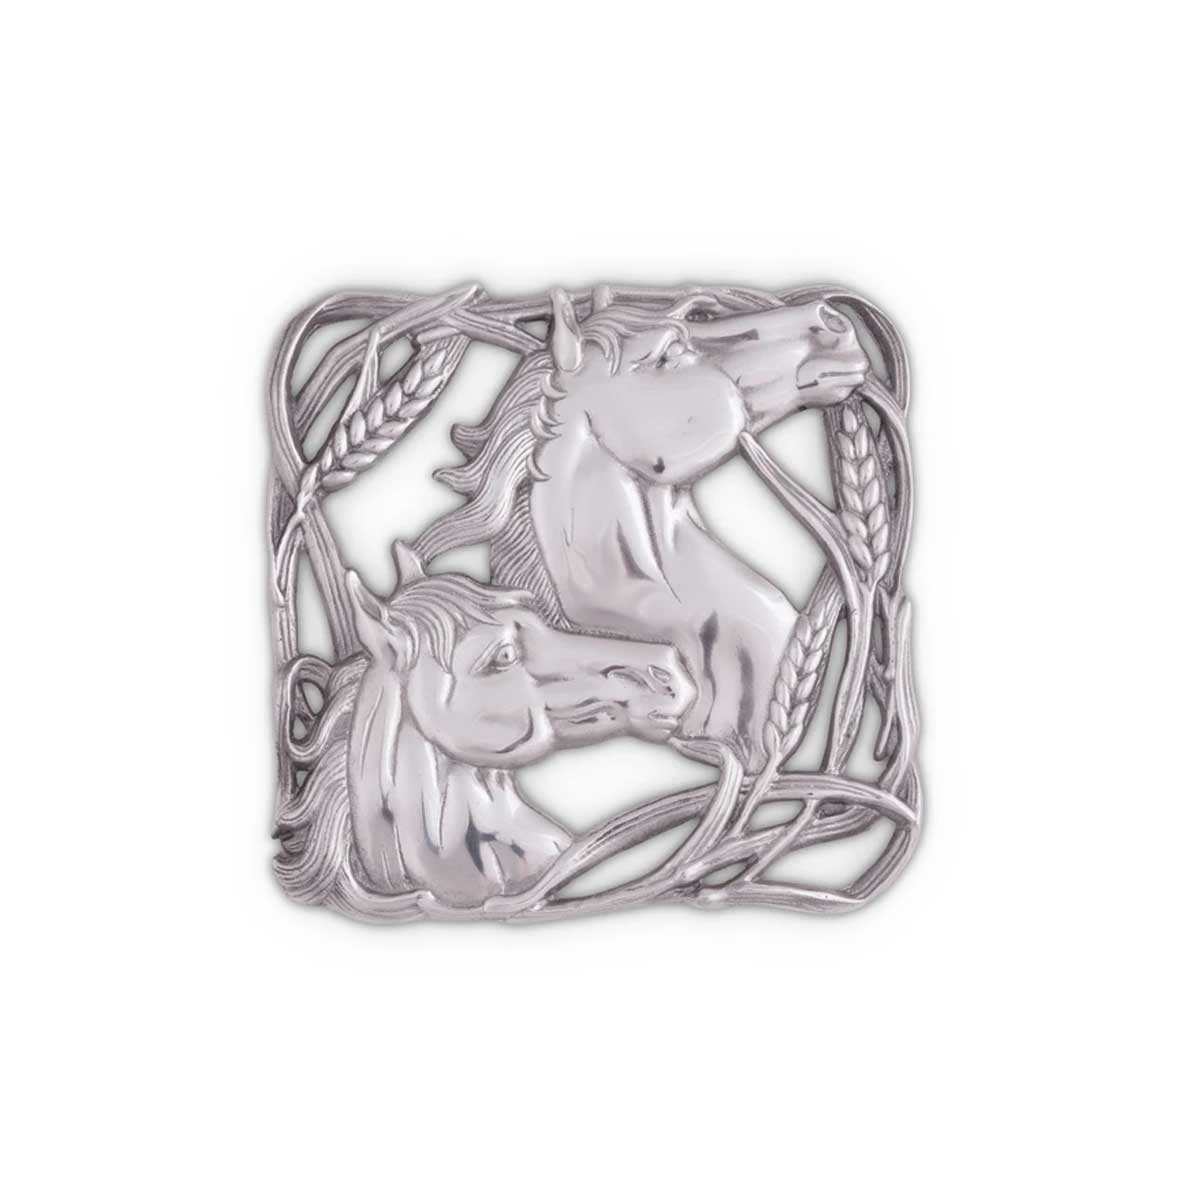 Vagabond House Horse with Wheat Trivet